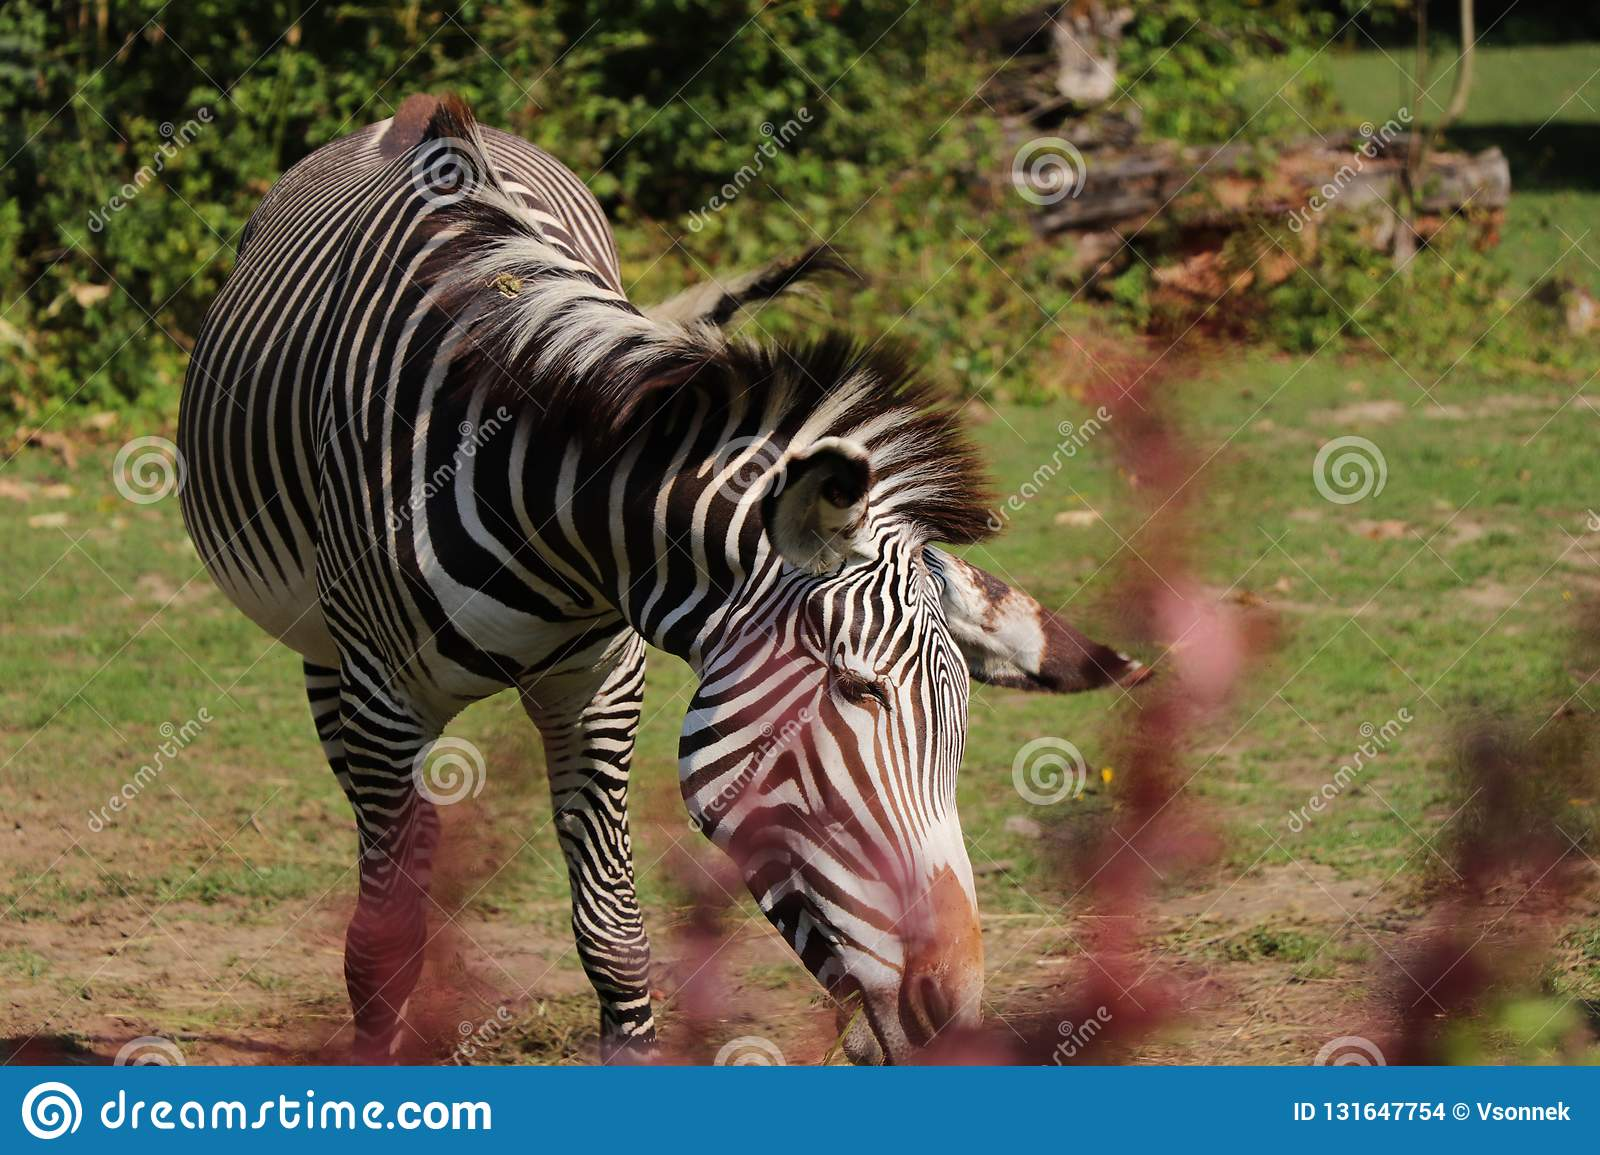 A Grévy`s zebra eating hay in the park. A beautiful animal with alternating black and white. Hot days in summer